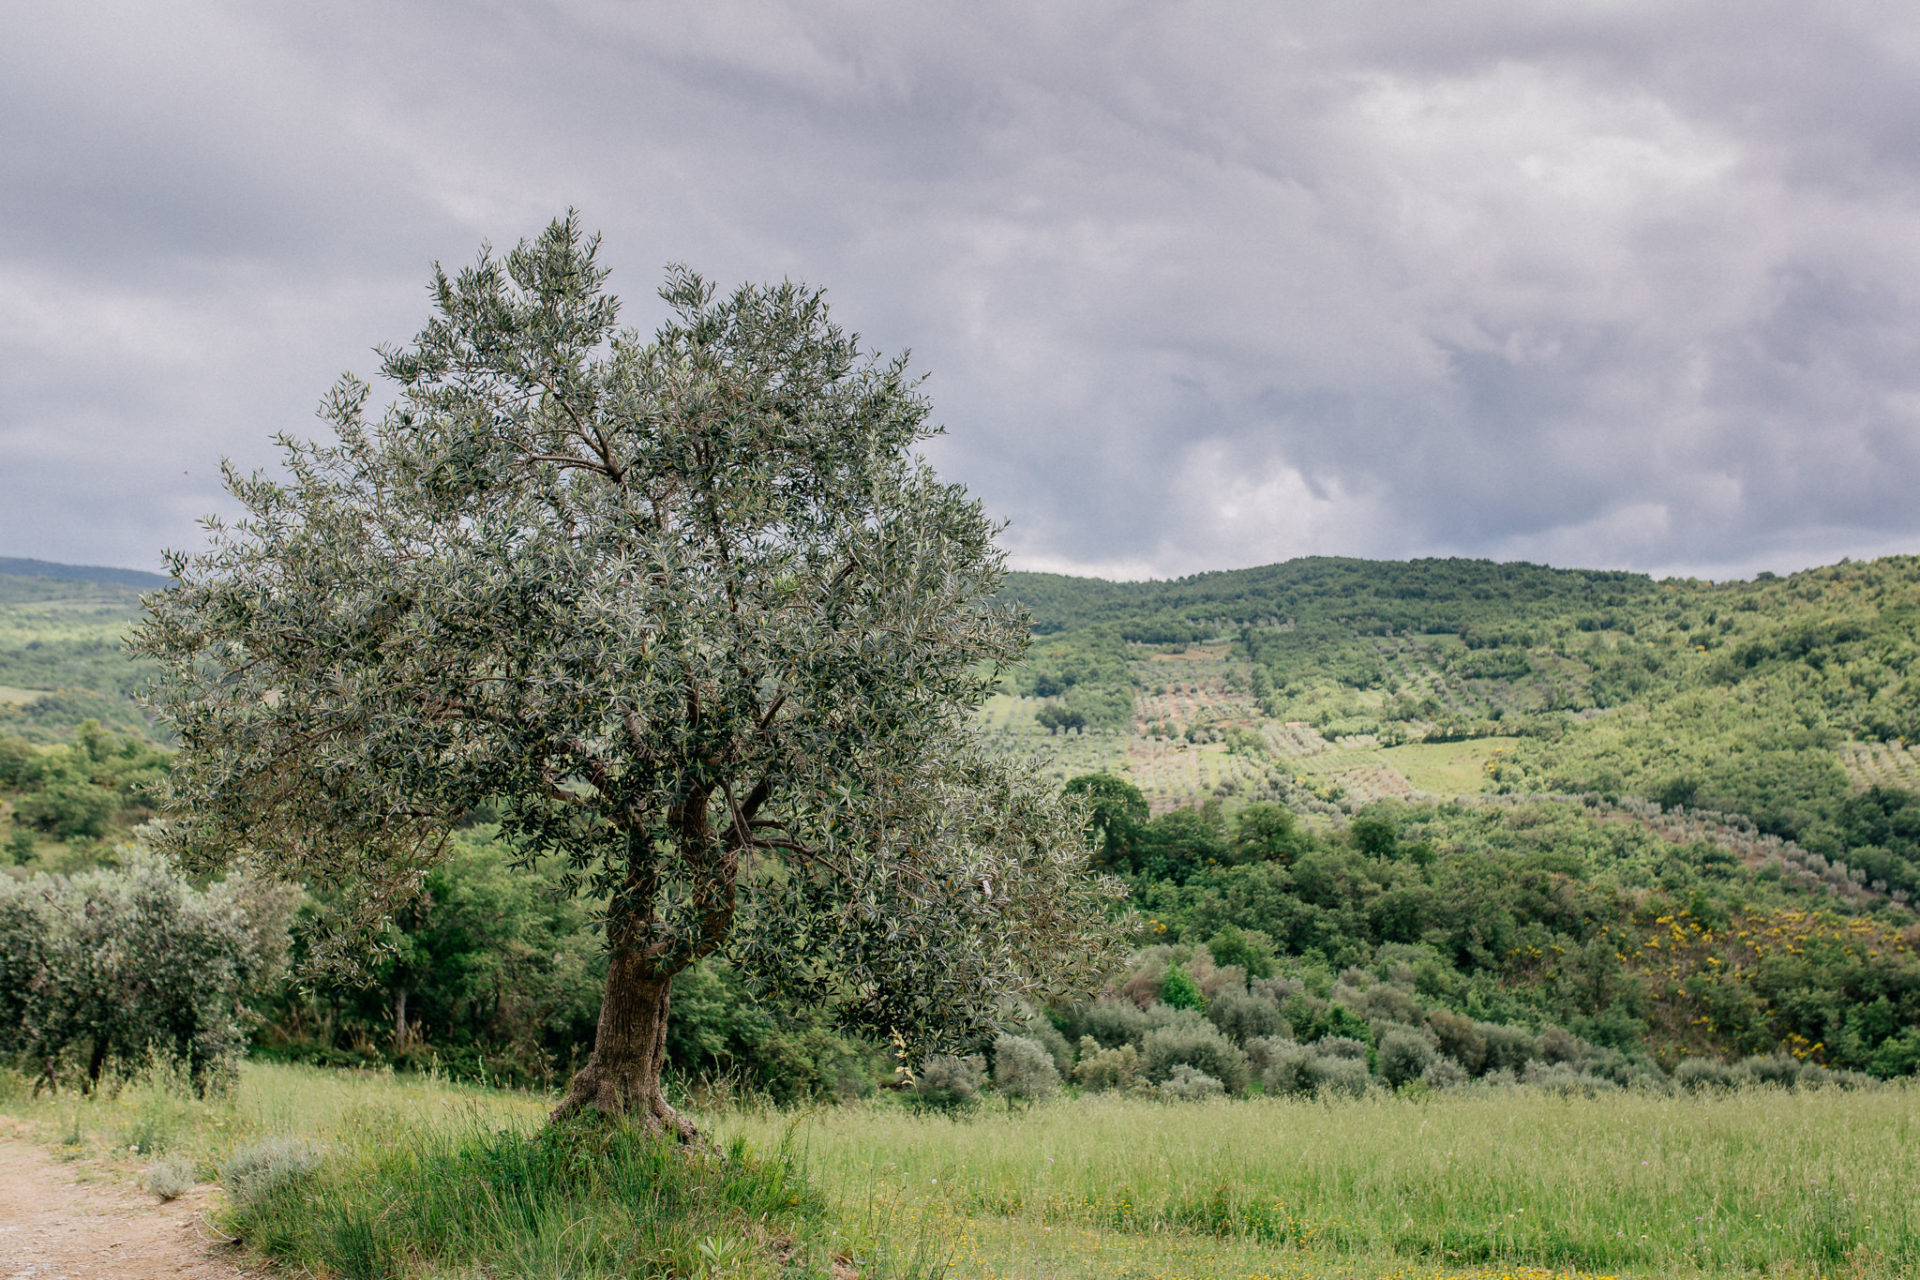 wedding photographer tuscany-italy road trip with dog-boutique hotel-exclusive romantic gateway-grosseto region-olive trees